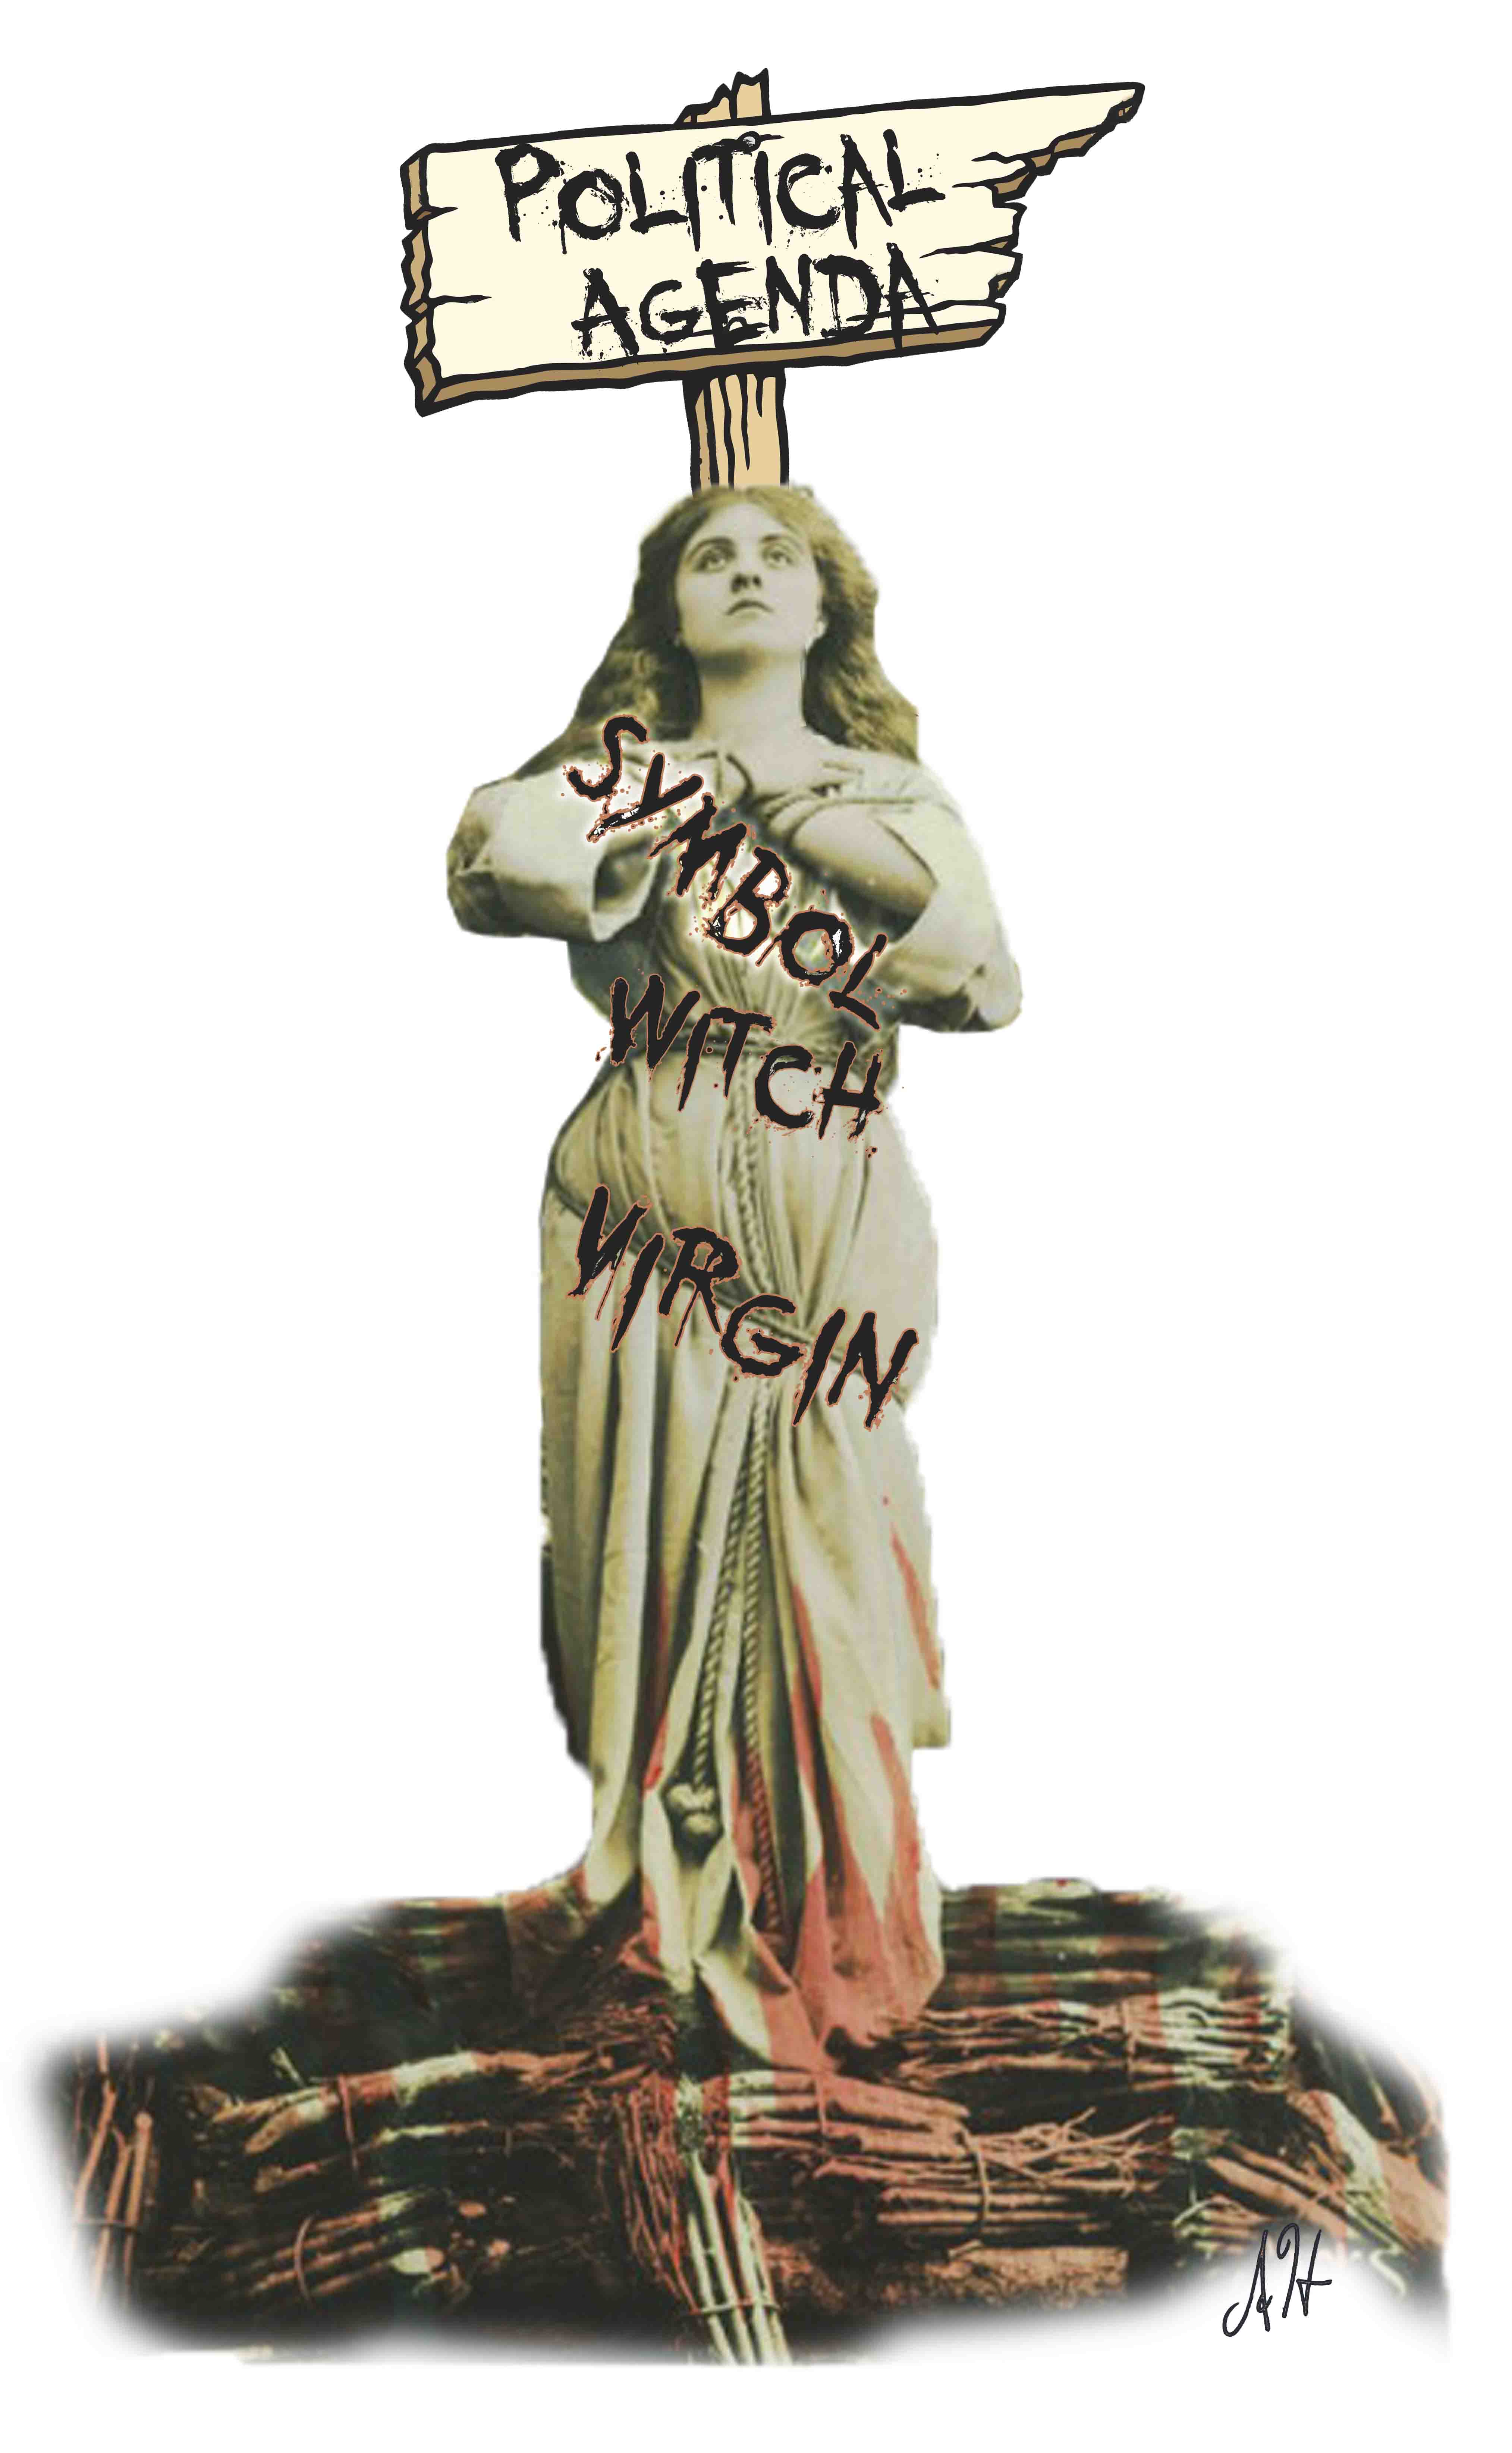 """Early 1900s postcard of Joan of Arc at the stake with political cartoon embellishments depicting the stake and ropes as """"political agenda"""" """"symbol"""" """"witch"""" and """"virgin"""""""